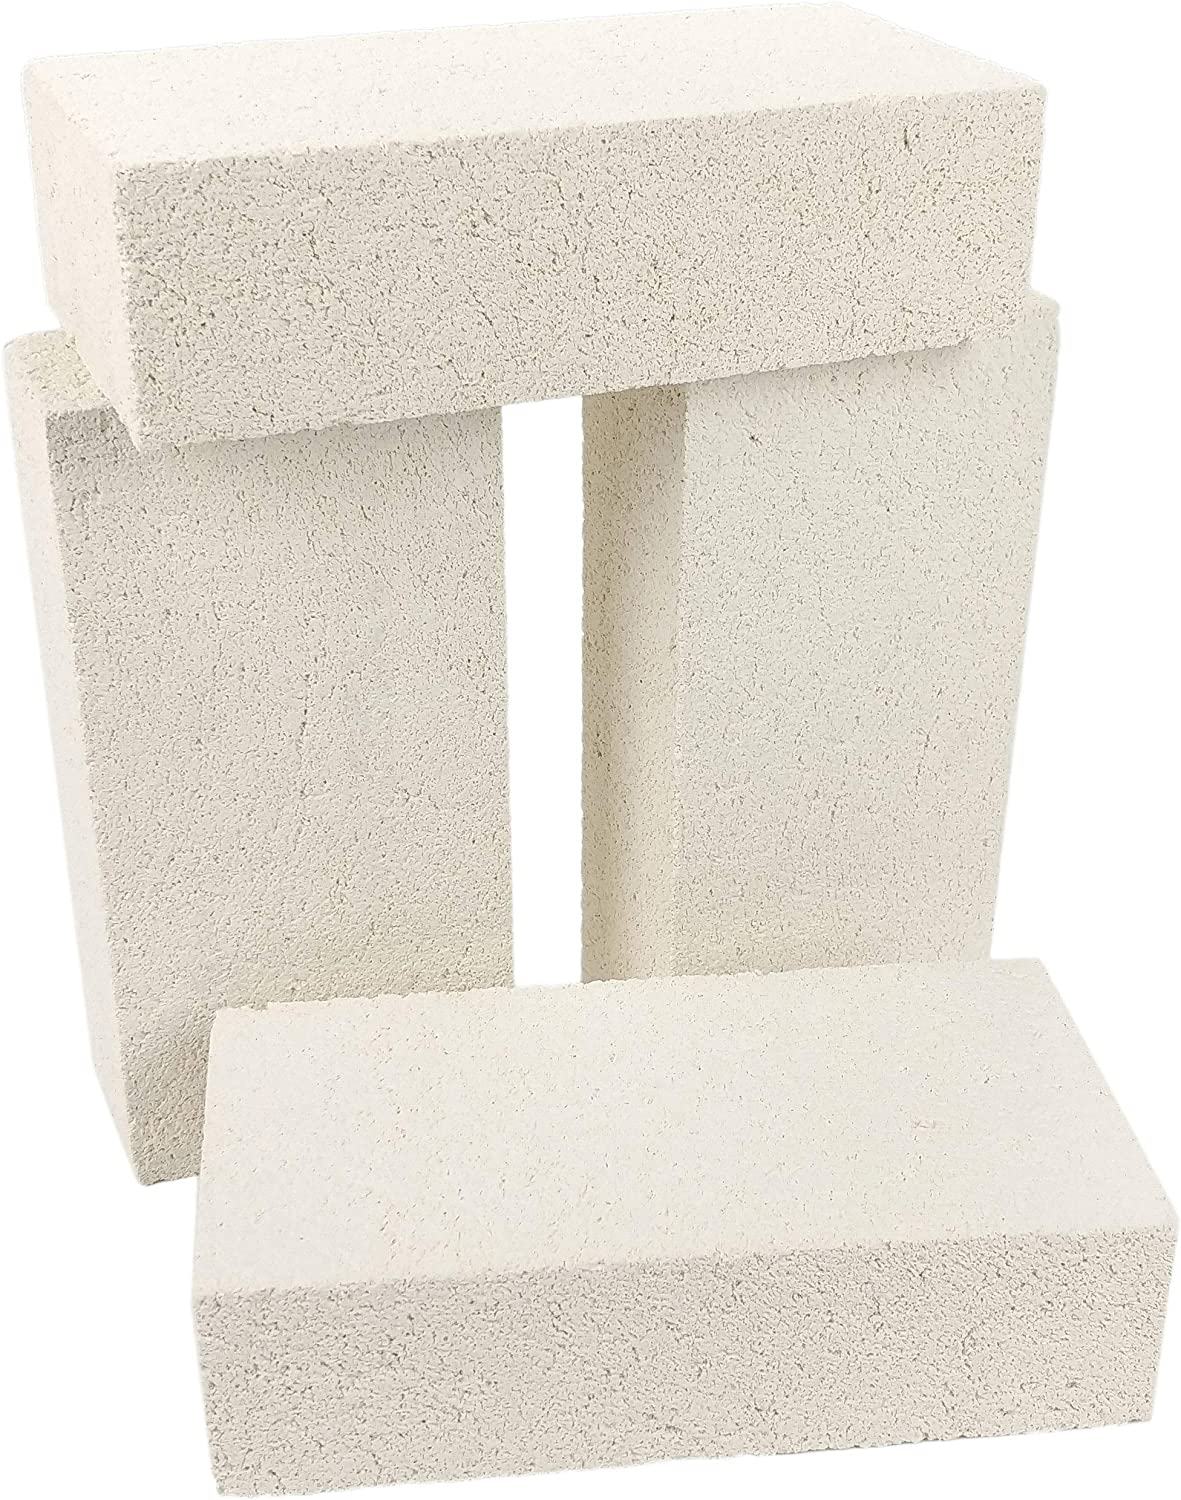 for Kilns Forges K-28 3128T 12-Pack Jewelry Soldering Metal Clay Firing Lynn Manufacturing Insulating Fire Brick 2800F Rated 9 x 4.5 x 2.5